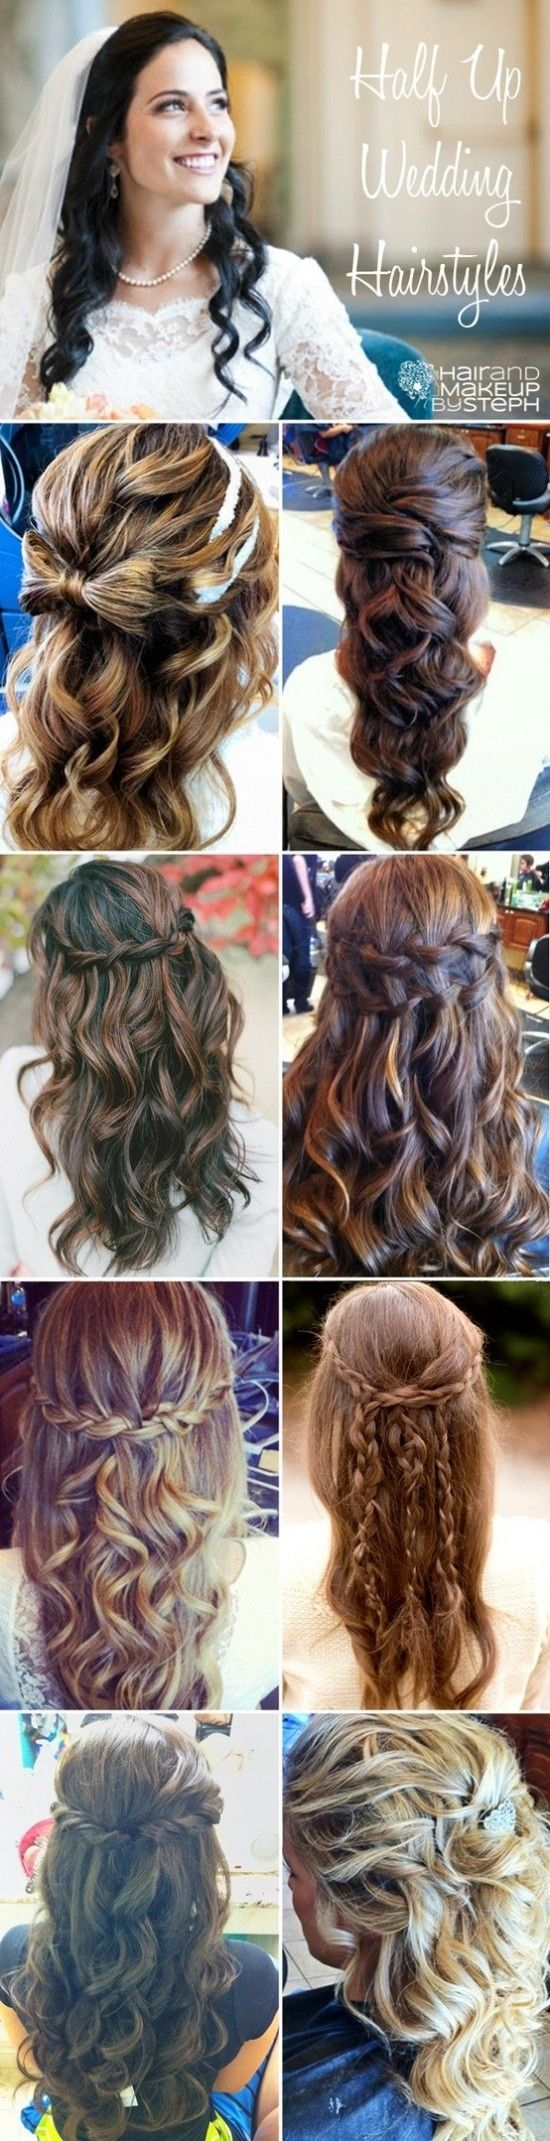 Tips for wedding hair styles gorgeousness pinterest hair style